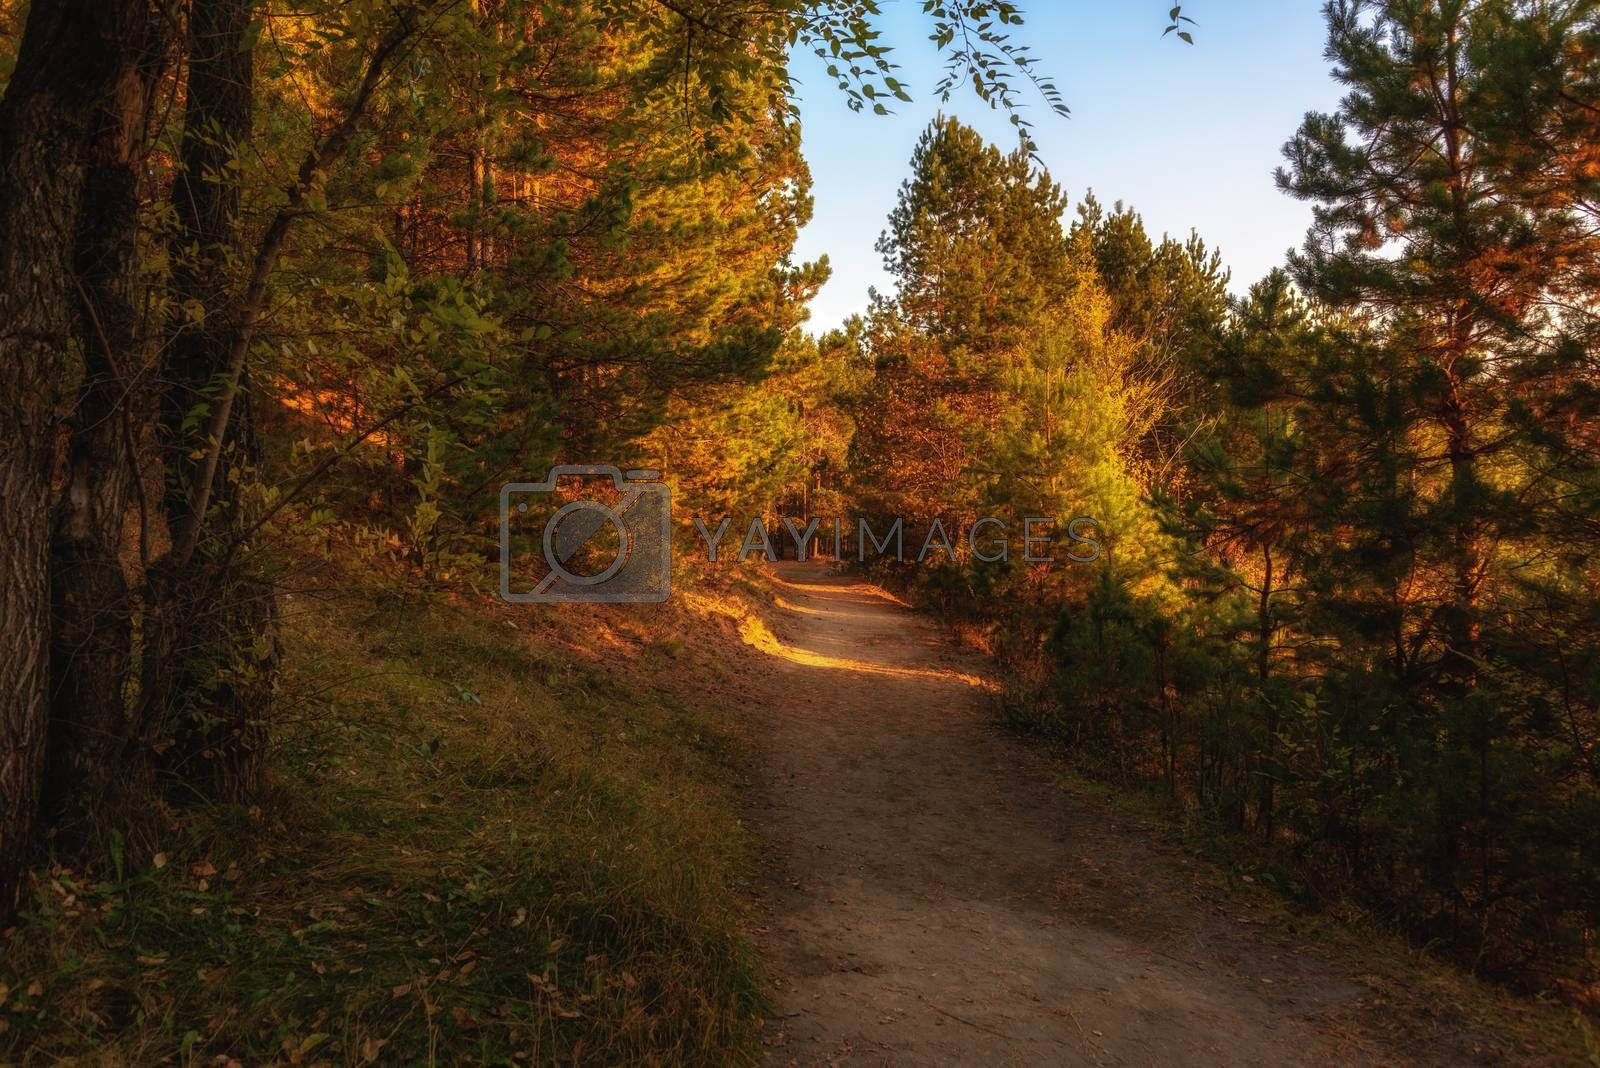 Royalty free image of Early morning in the forest by VladimirZubkov